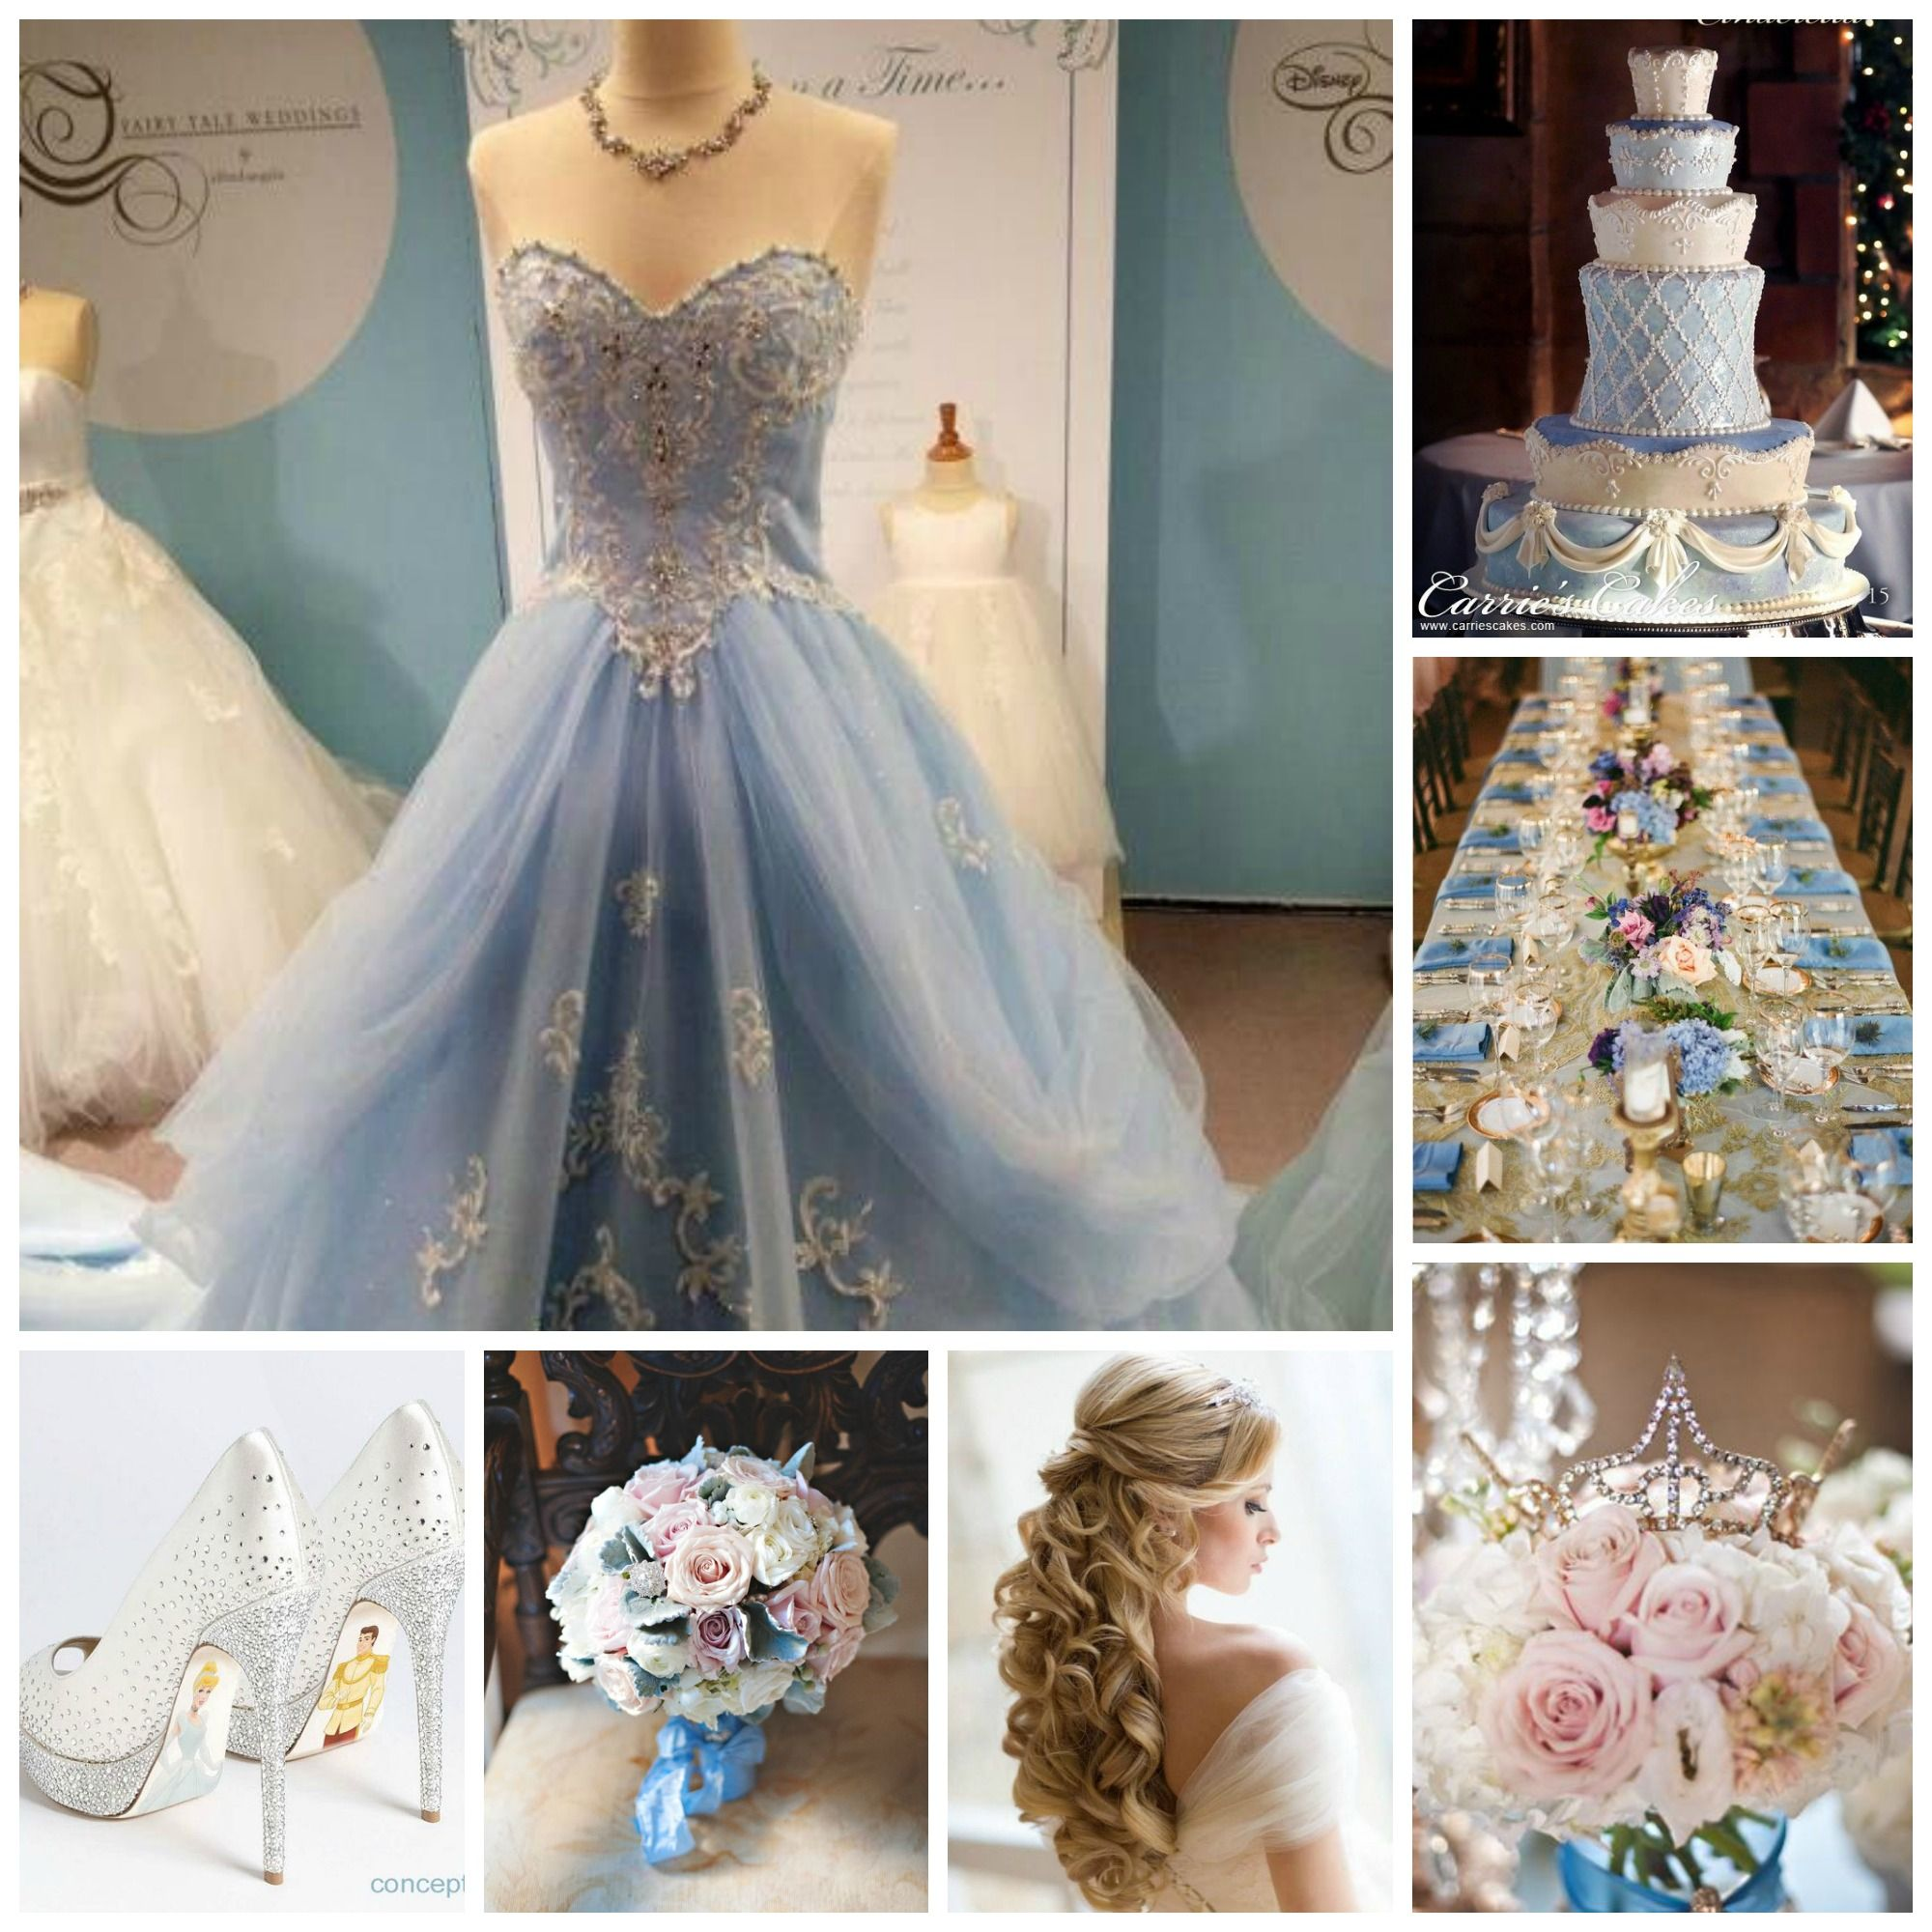 Quince Theme Decorations Quinceanera ideas Sweet 16 and Quince ideas